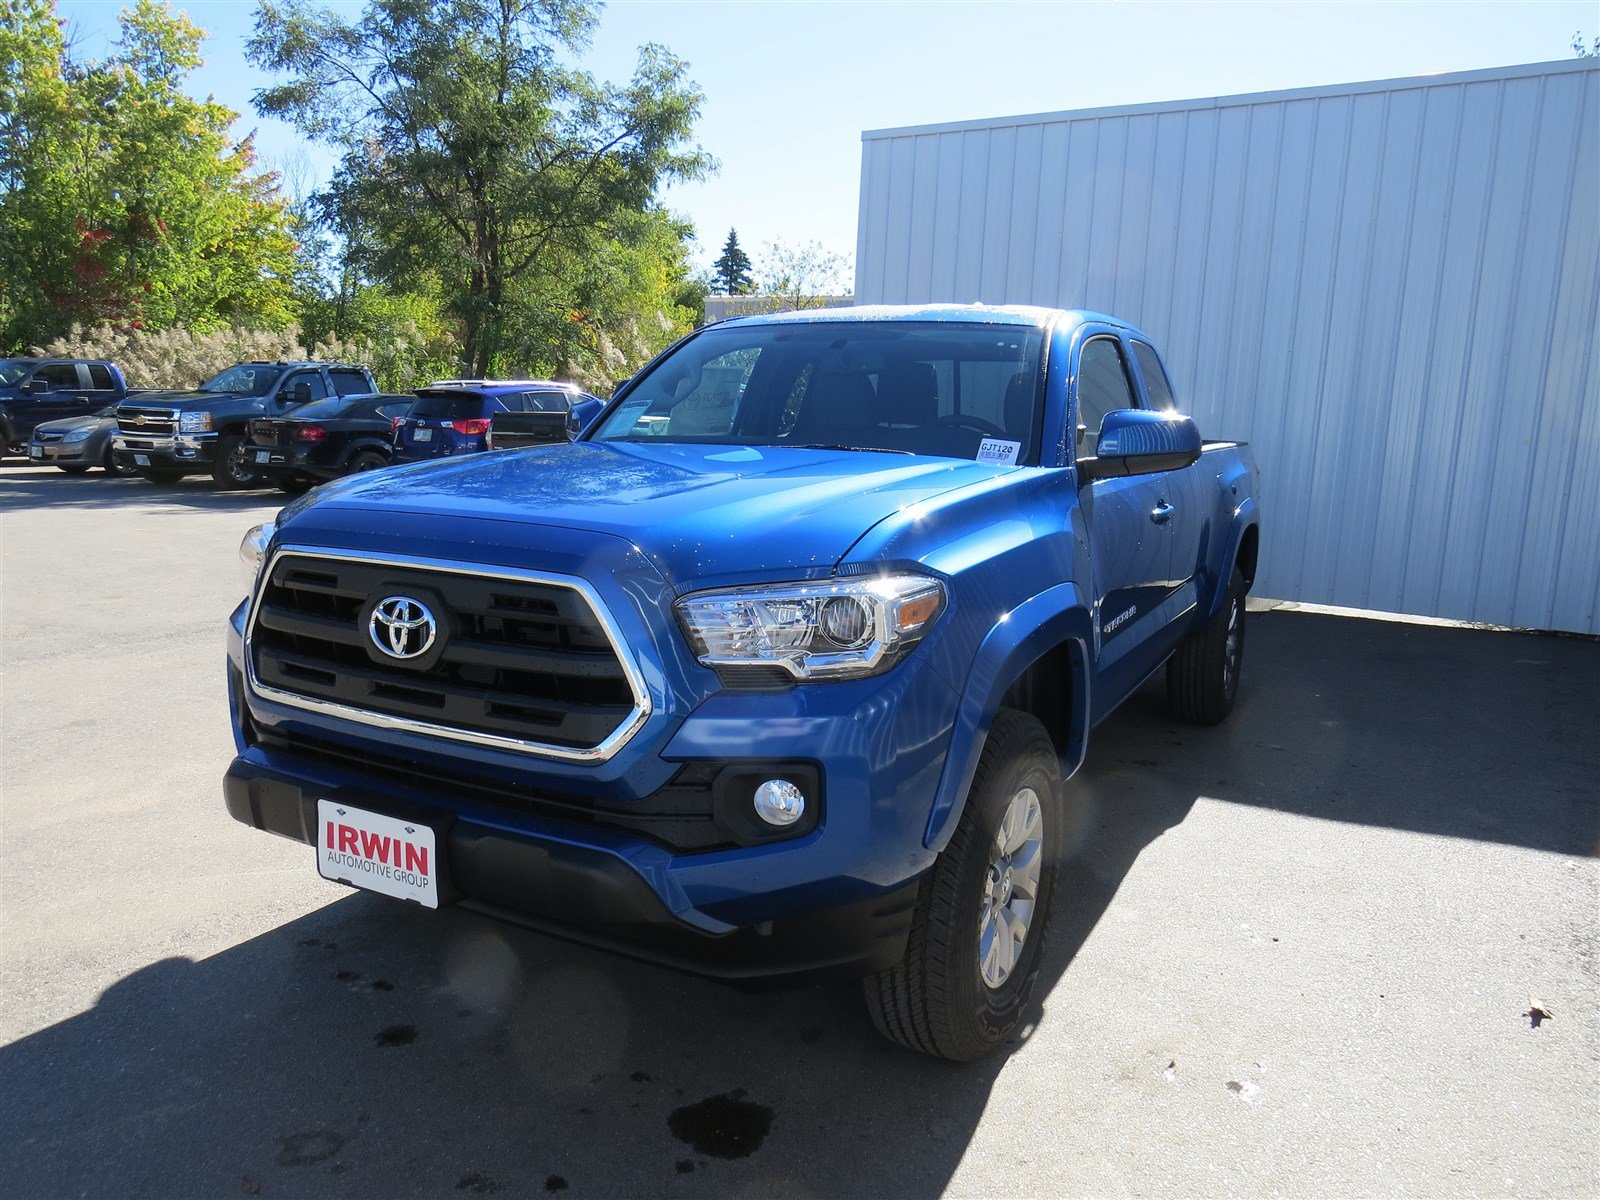 2016 toyota tacoma is for sale at irwin toyota uncategorized for Irwin motors laconia nh